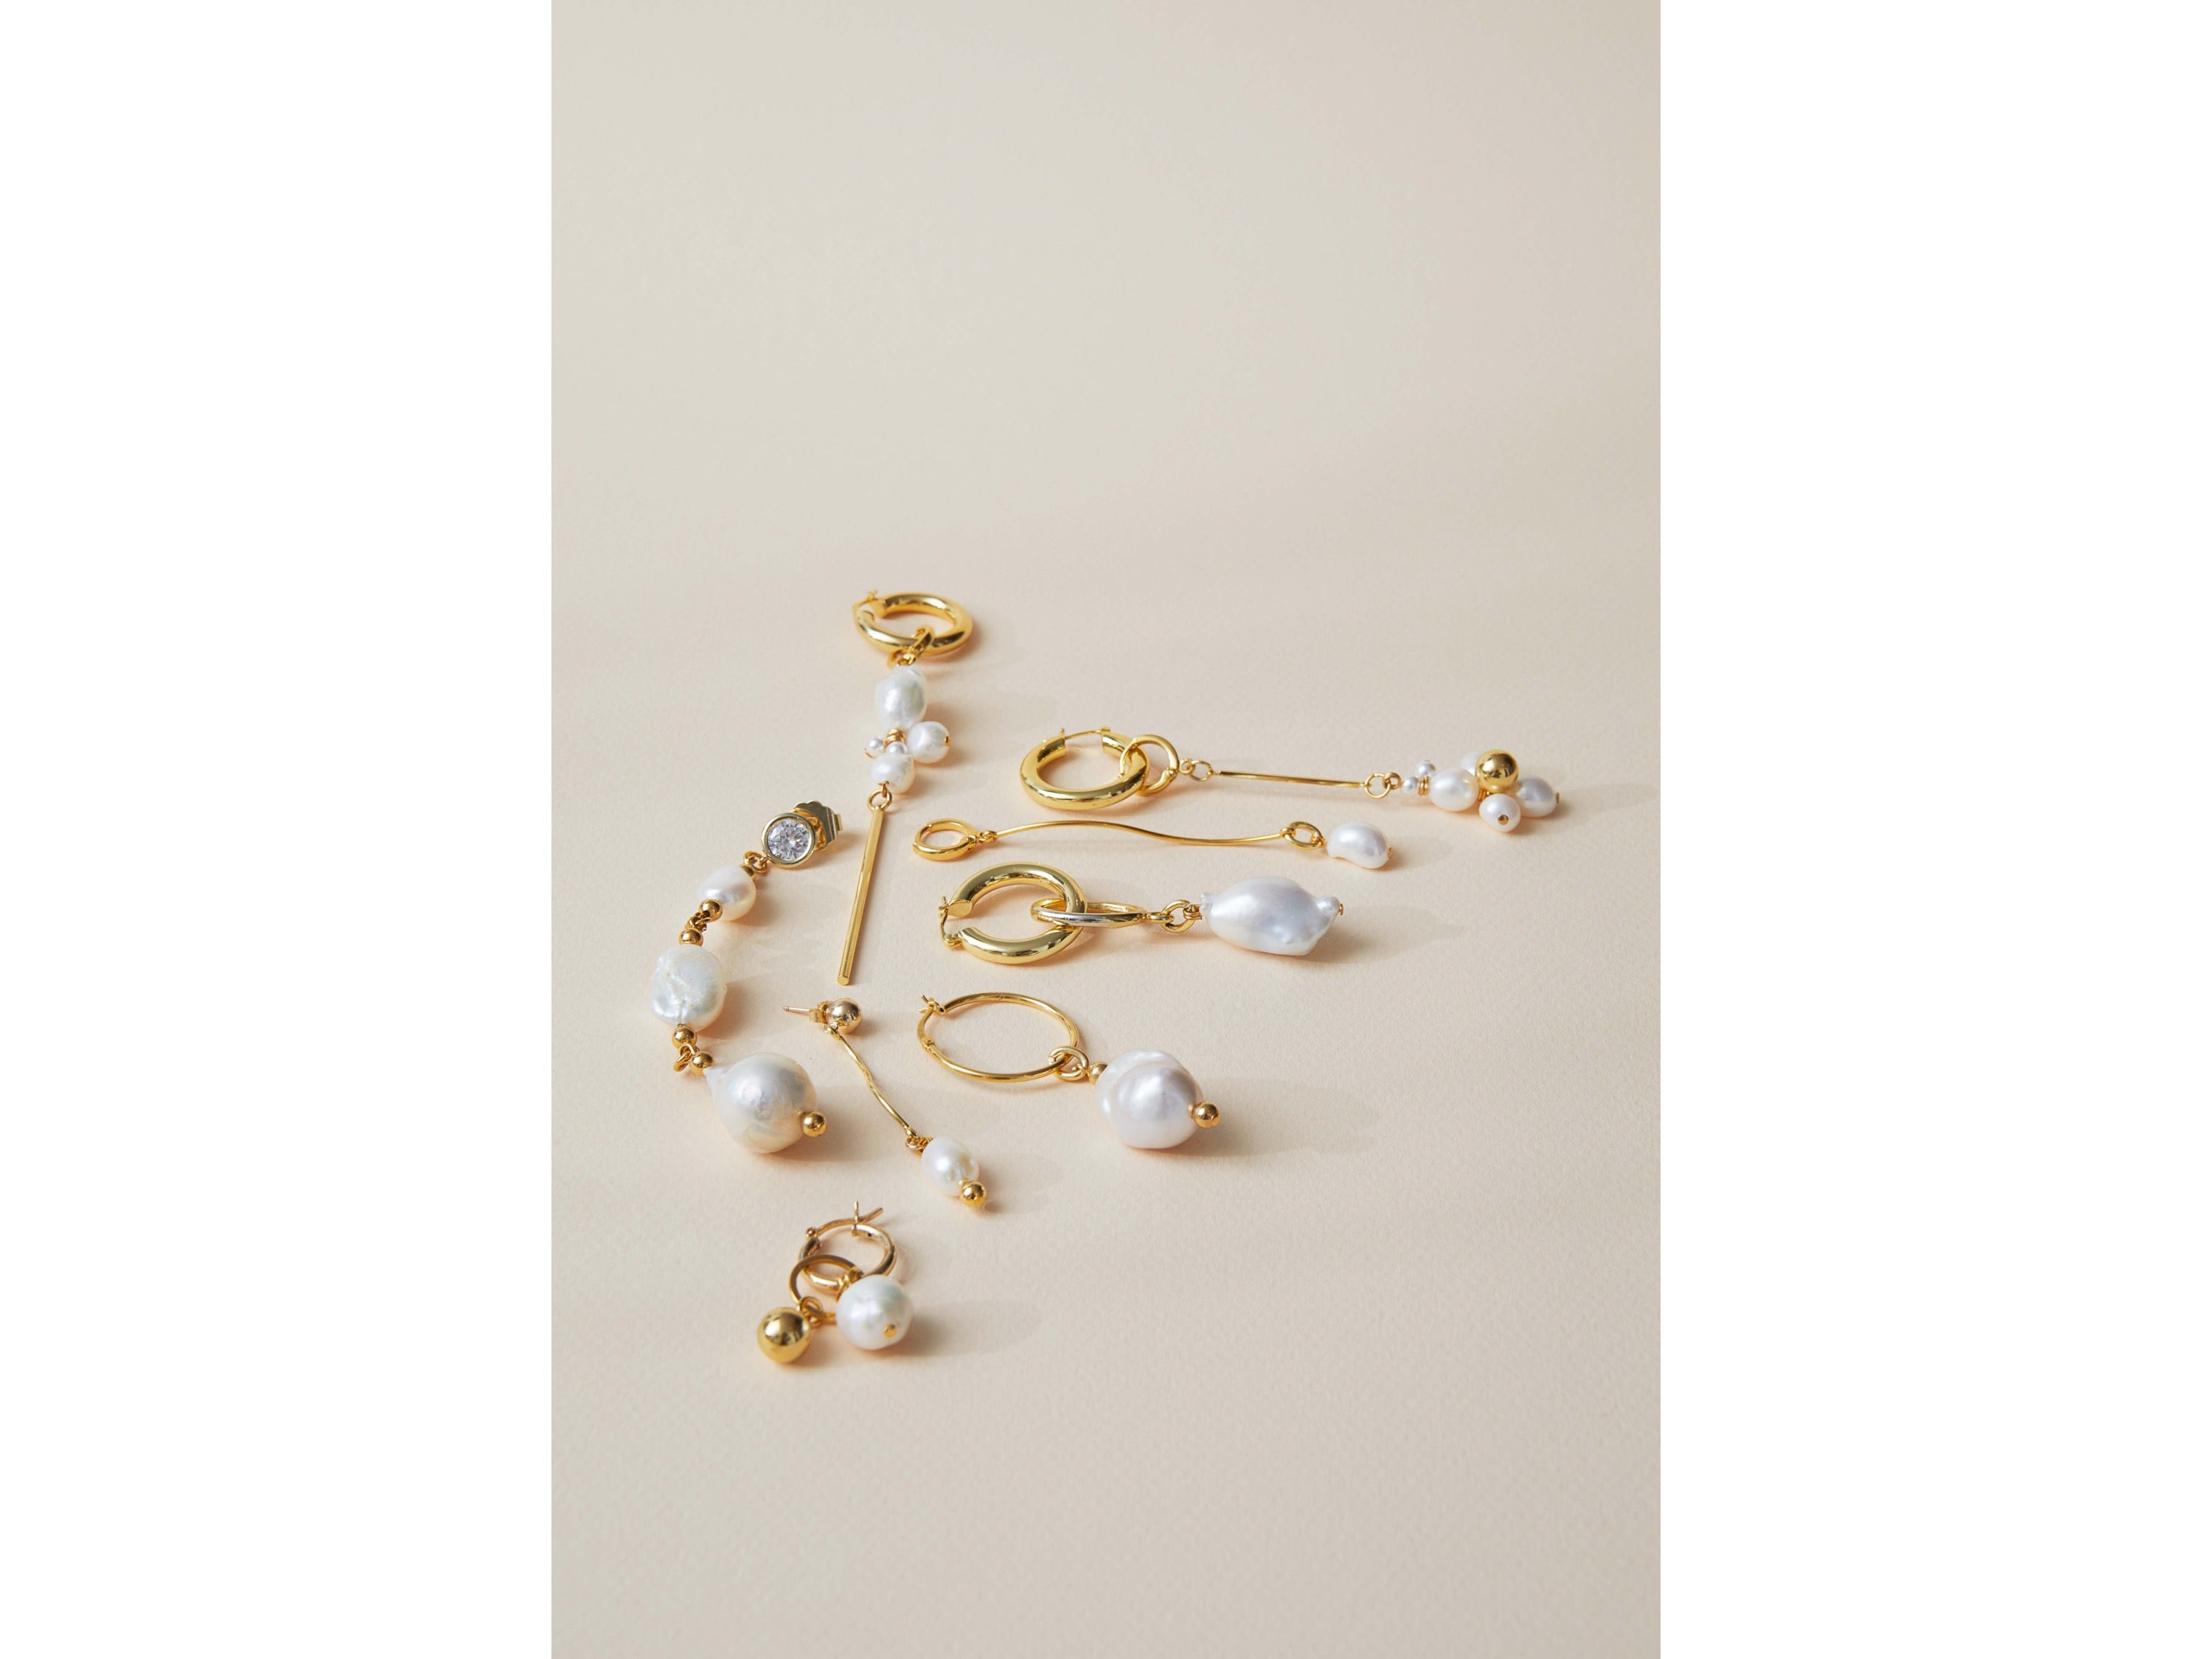 Swell Single Earring / Gold